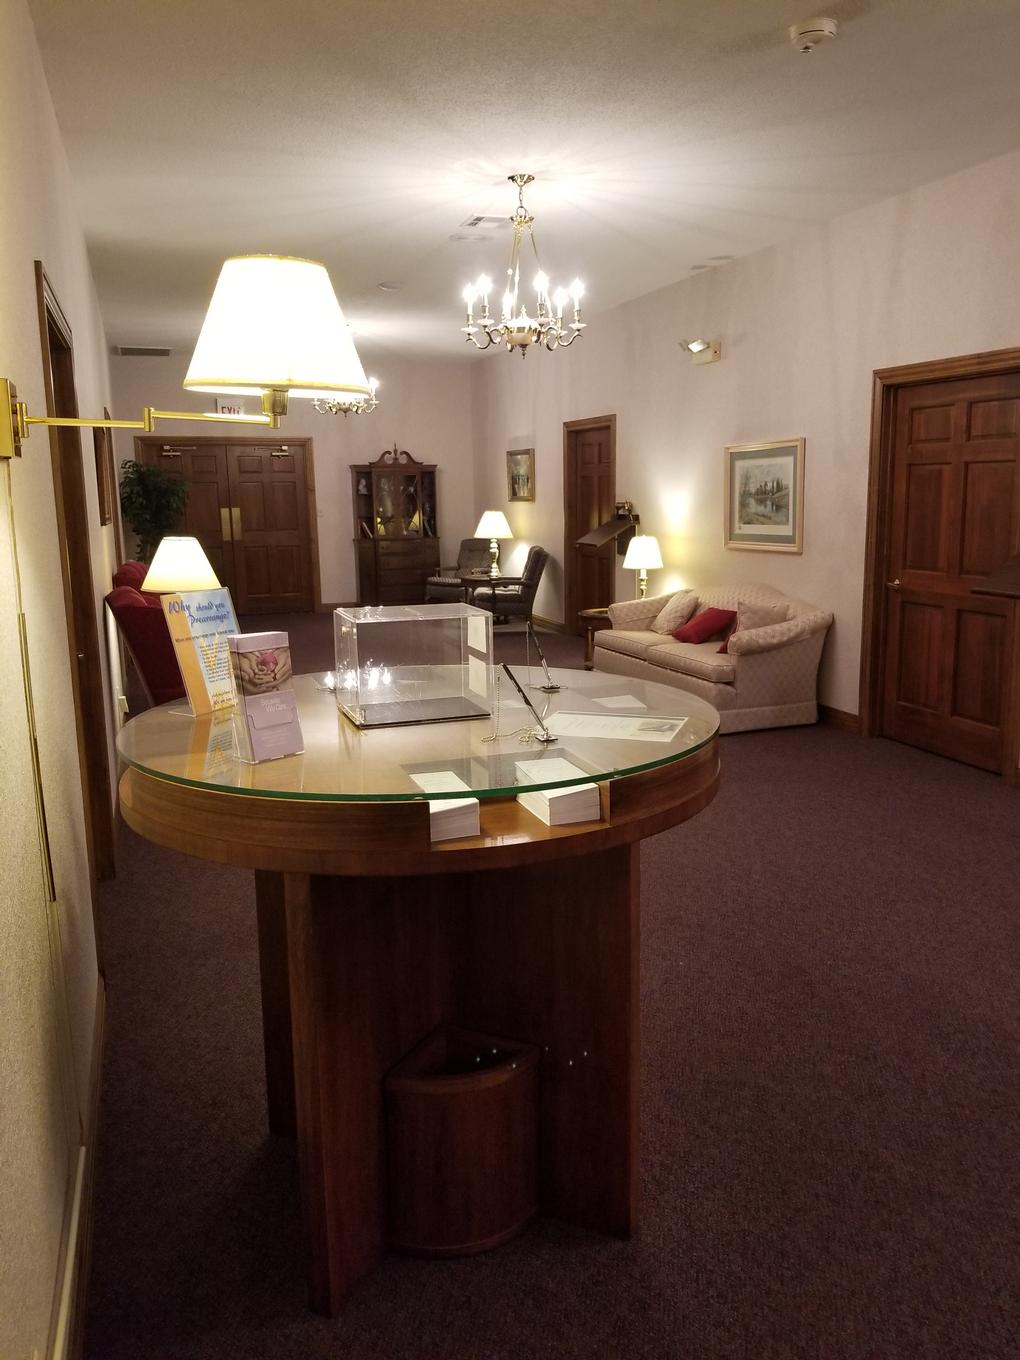 The entrance to the funeral home allows ample space for visiting with friends and family during visitations and prior to chapel funeral services.